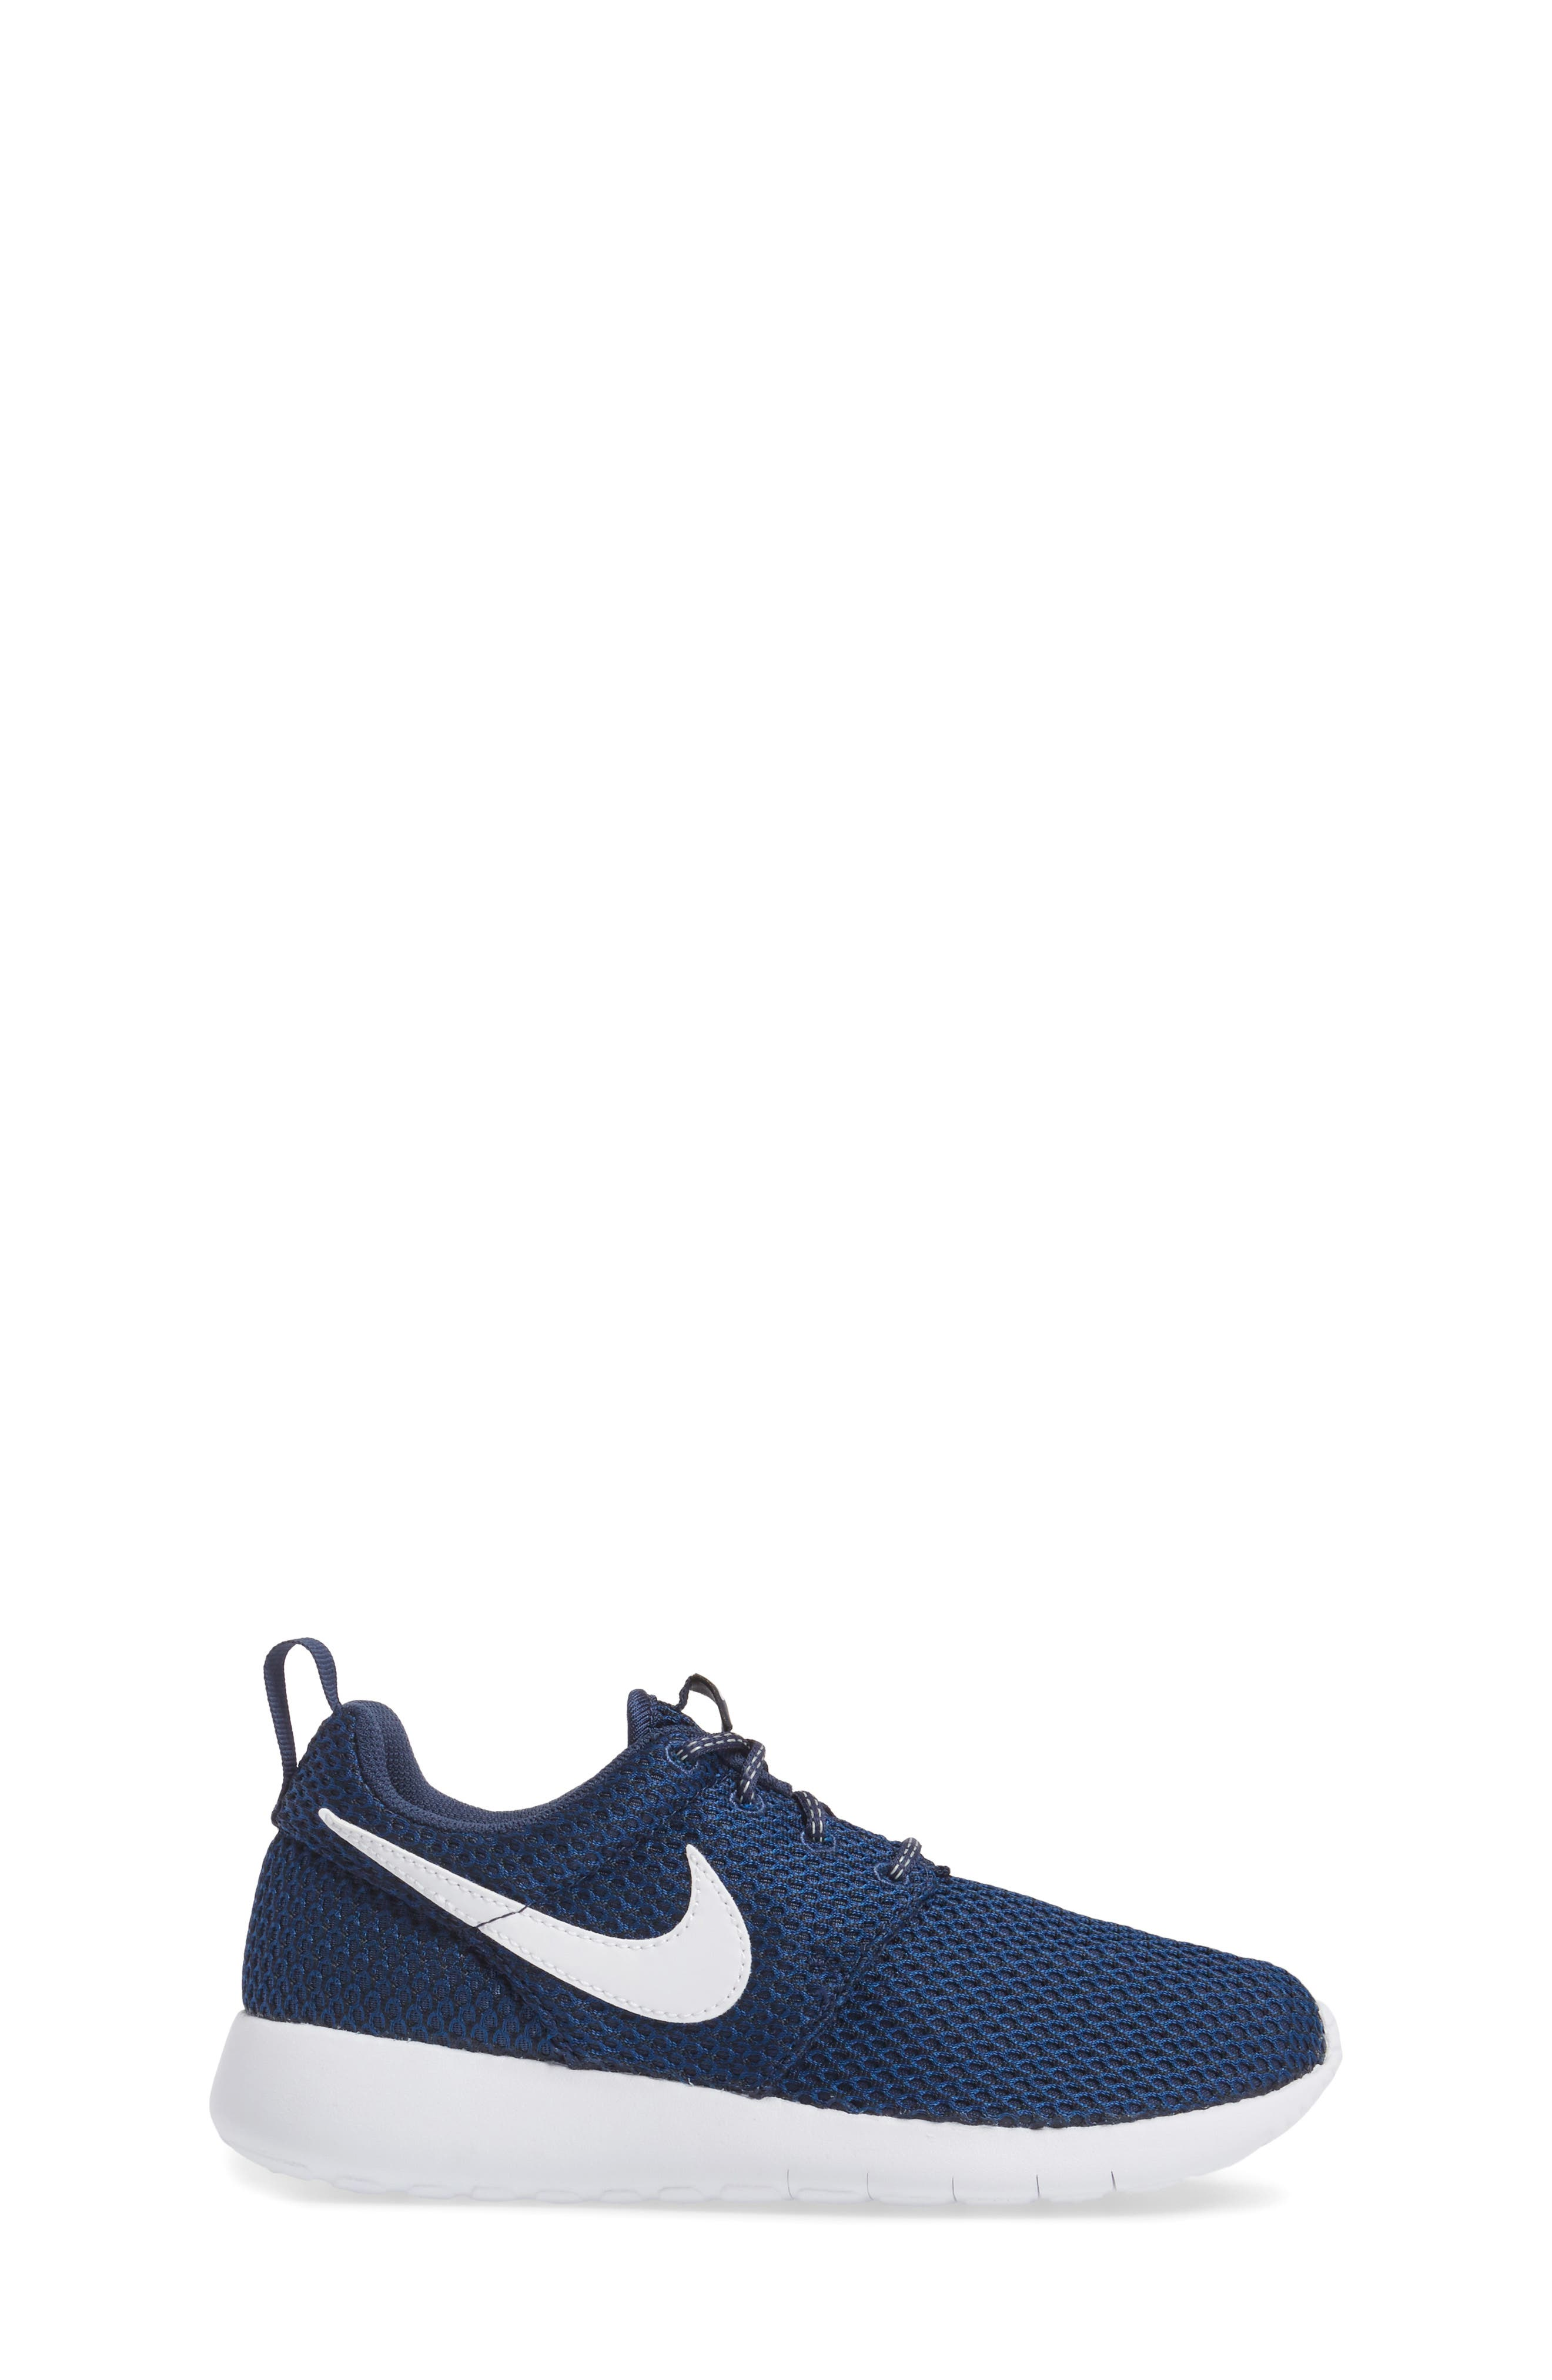 'Roshe Run' Sneaker,                             Alternate thumbnail 140, color,